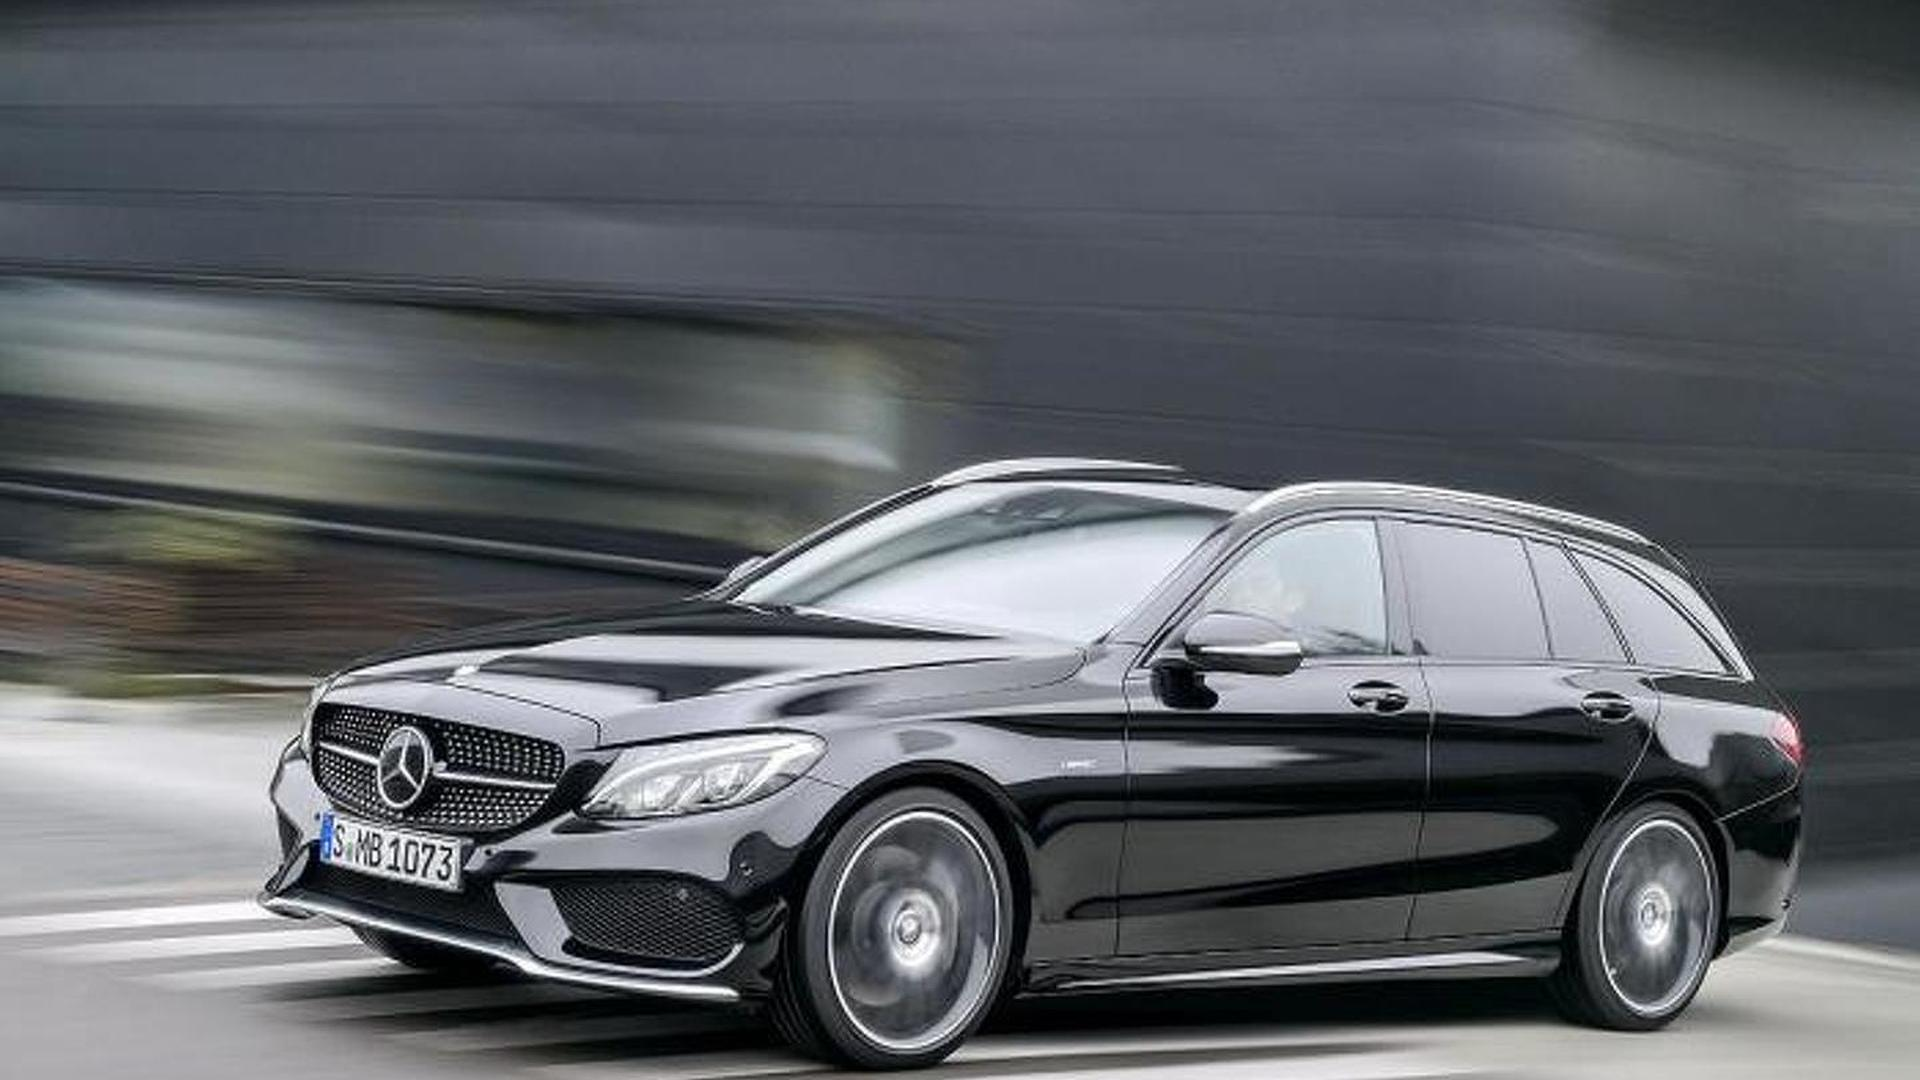 Mercedes-Benz C450 AMG Sport priced from €59,976